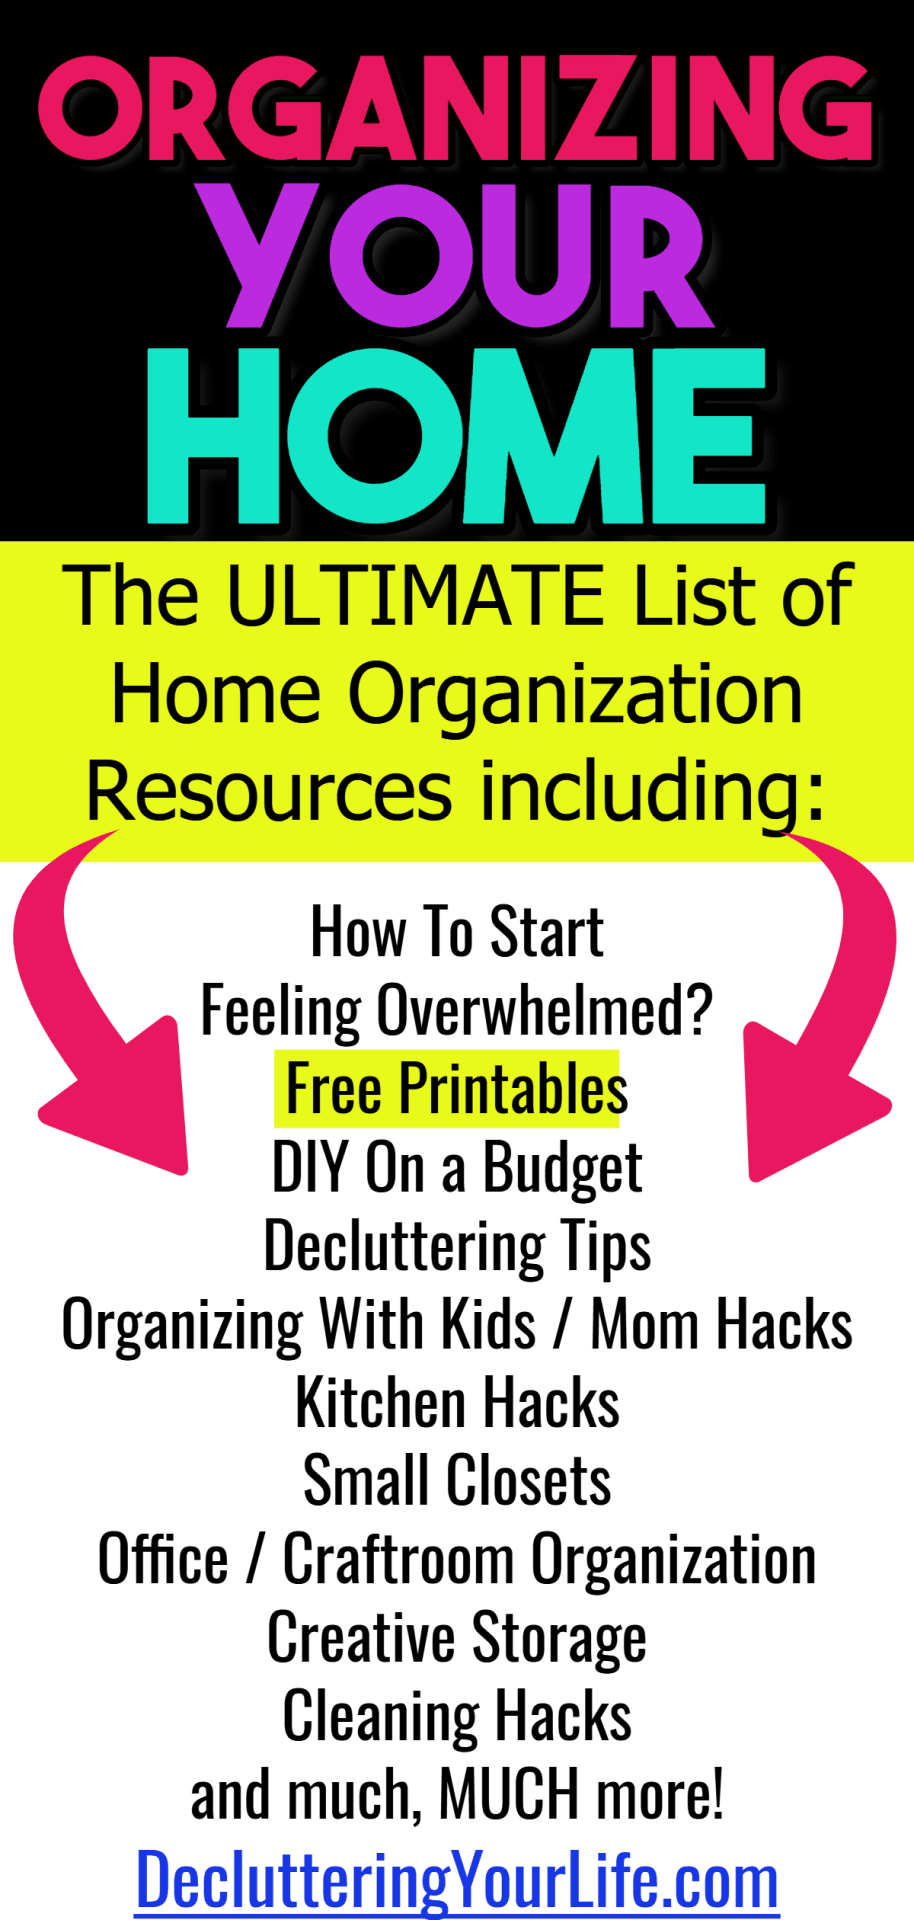 Organizing your home - the ultimate list of home organization tips including: How To Start, Feeling Overwhelmed, Free Printables, DIY On a Budget, Decluttering Tips, Organizing With Kids / Mom Hacks, Kitchen Hacks, Small Closets, Office / Craftroom Organization, Creative Storage, Cleaning Hacks, Paper Clutter Solutions and more to take YOU from cluttered mess to organized success!